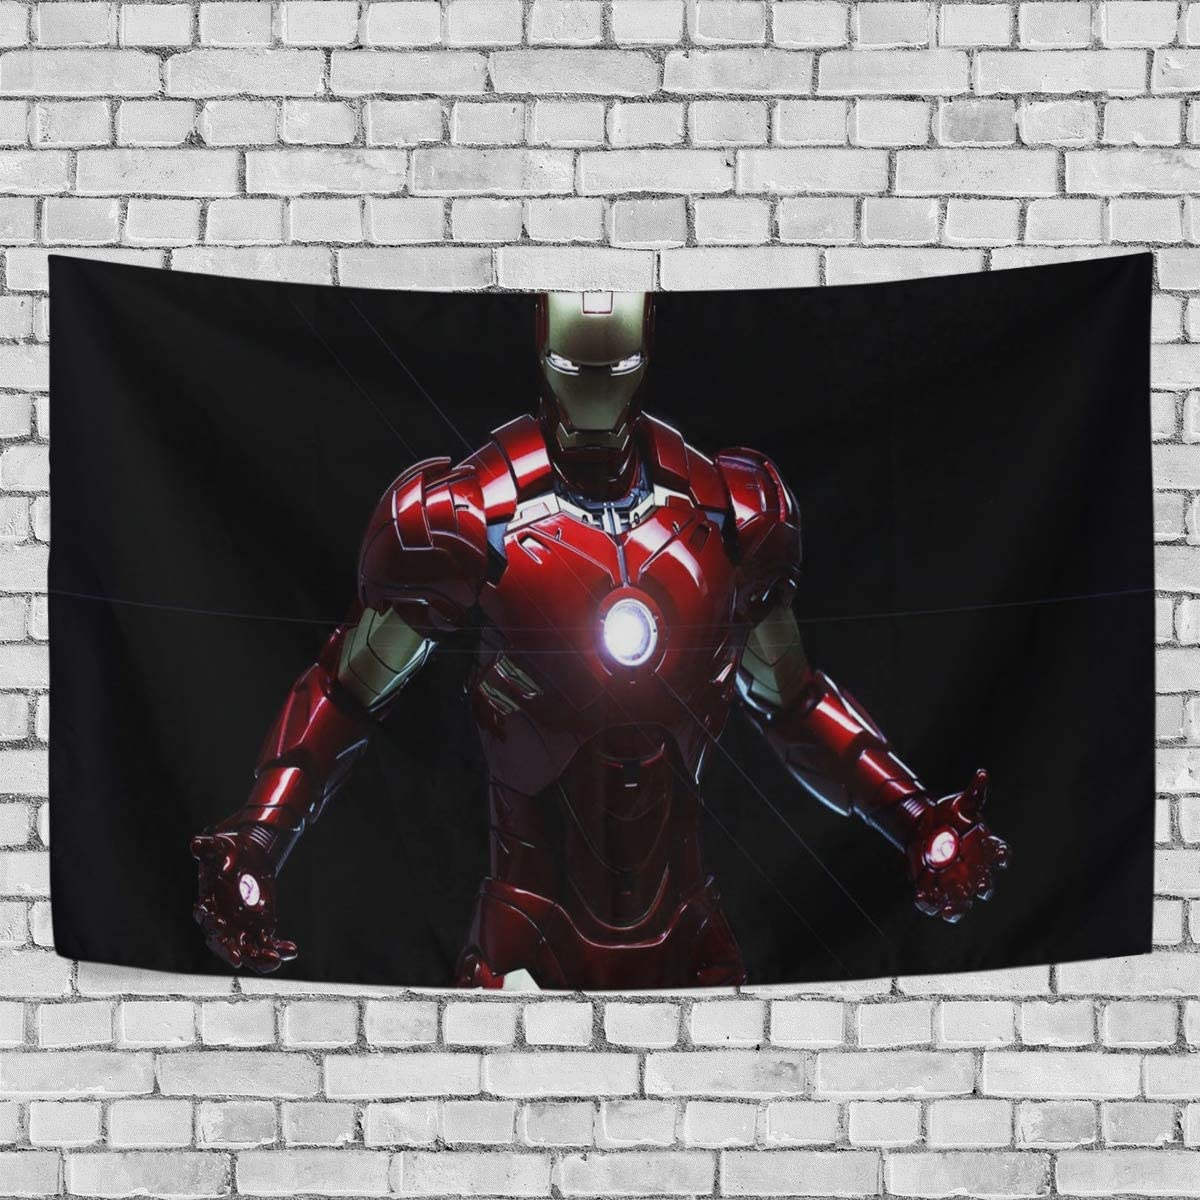 FASHIONDIY Avengers Iron Man Tapestry Wall Hanging Decoration for Apartment Home Art Wall Tapestry for Bedroom Living Room Dorm Fashion 80 x 60 inches